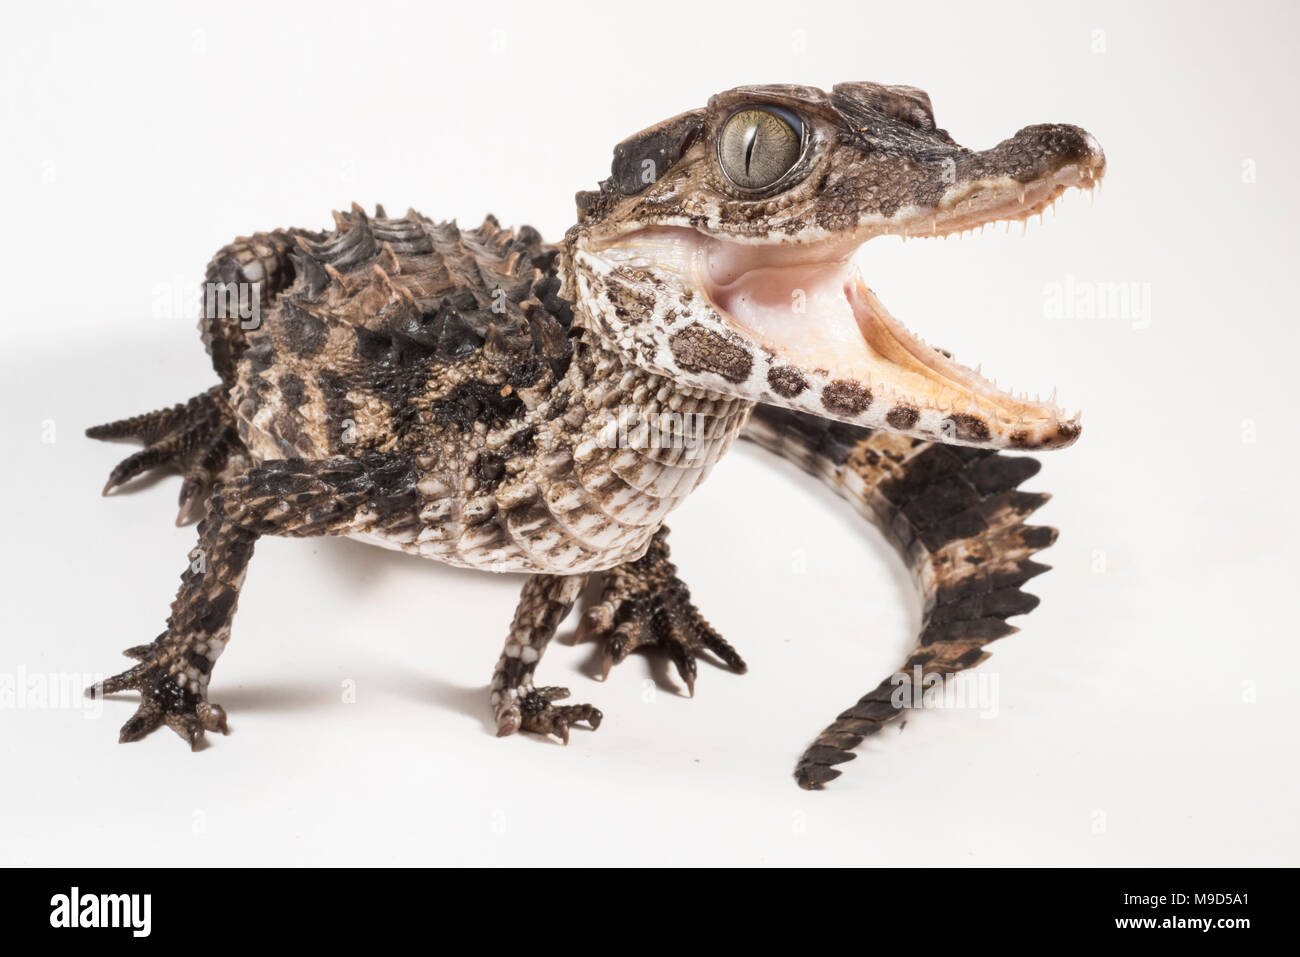 One of the smallest crocodilian species, the smooth fronted caiman from Peru, photographed isolated on a white background. - Stock Image